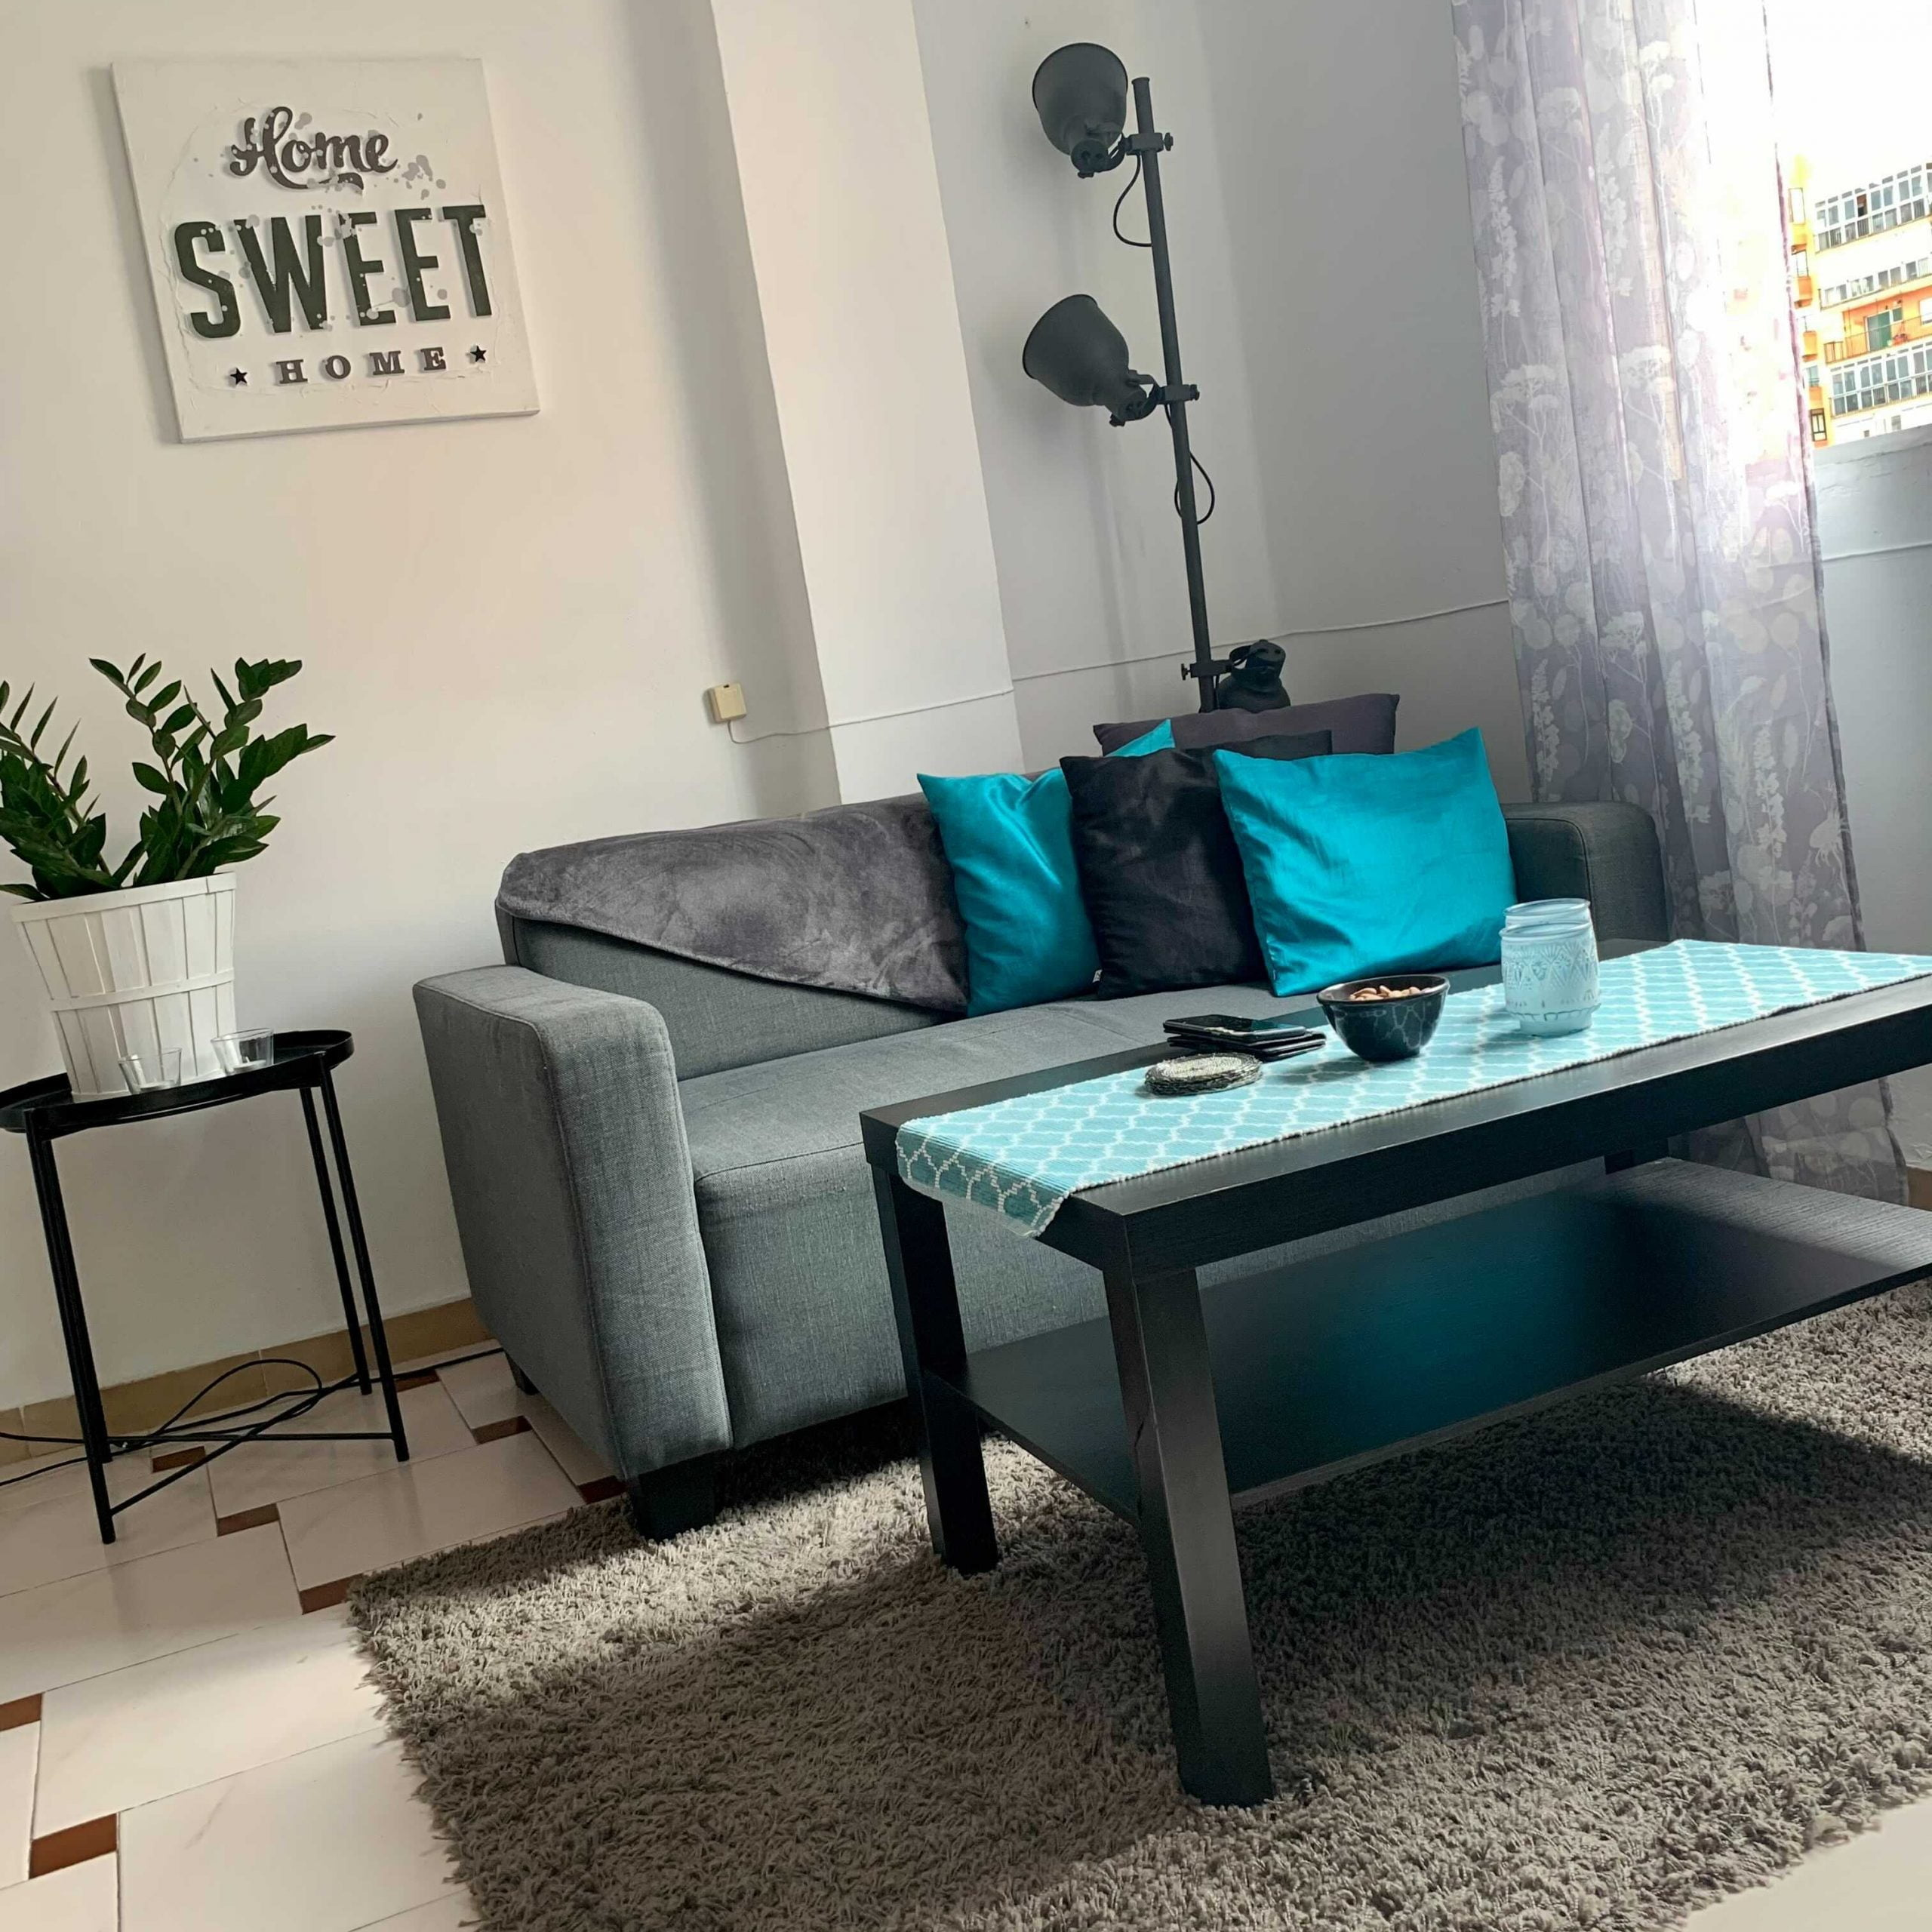 Great furnished apartment for expats in Valencia